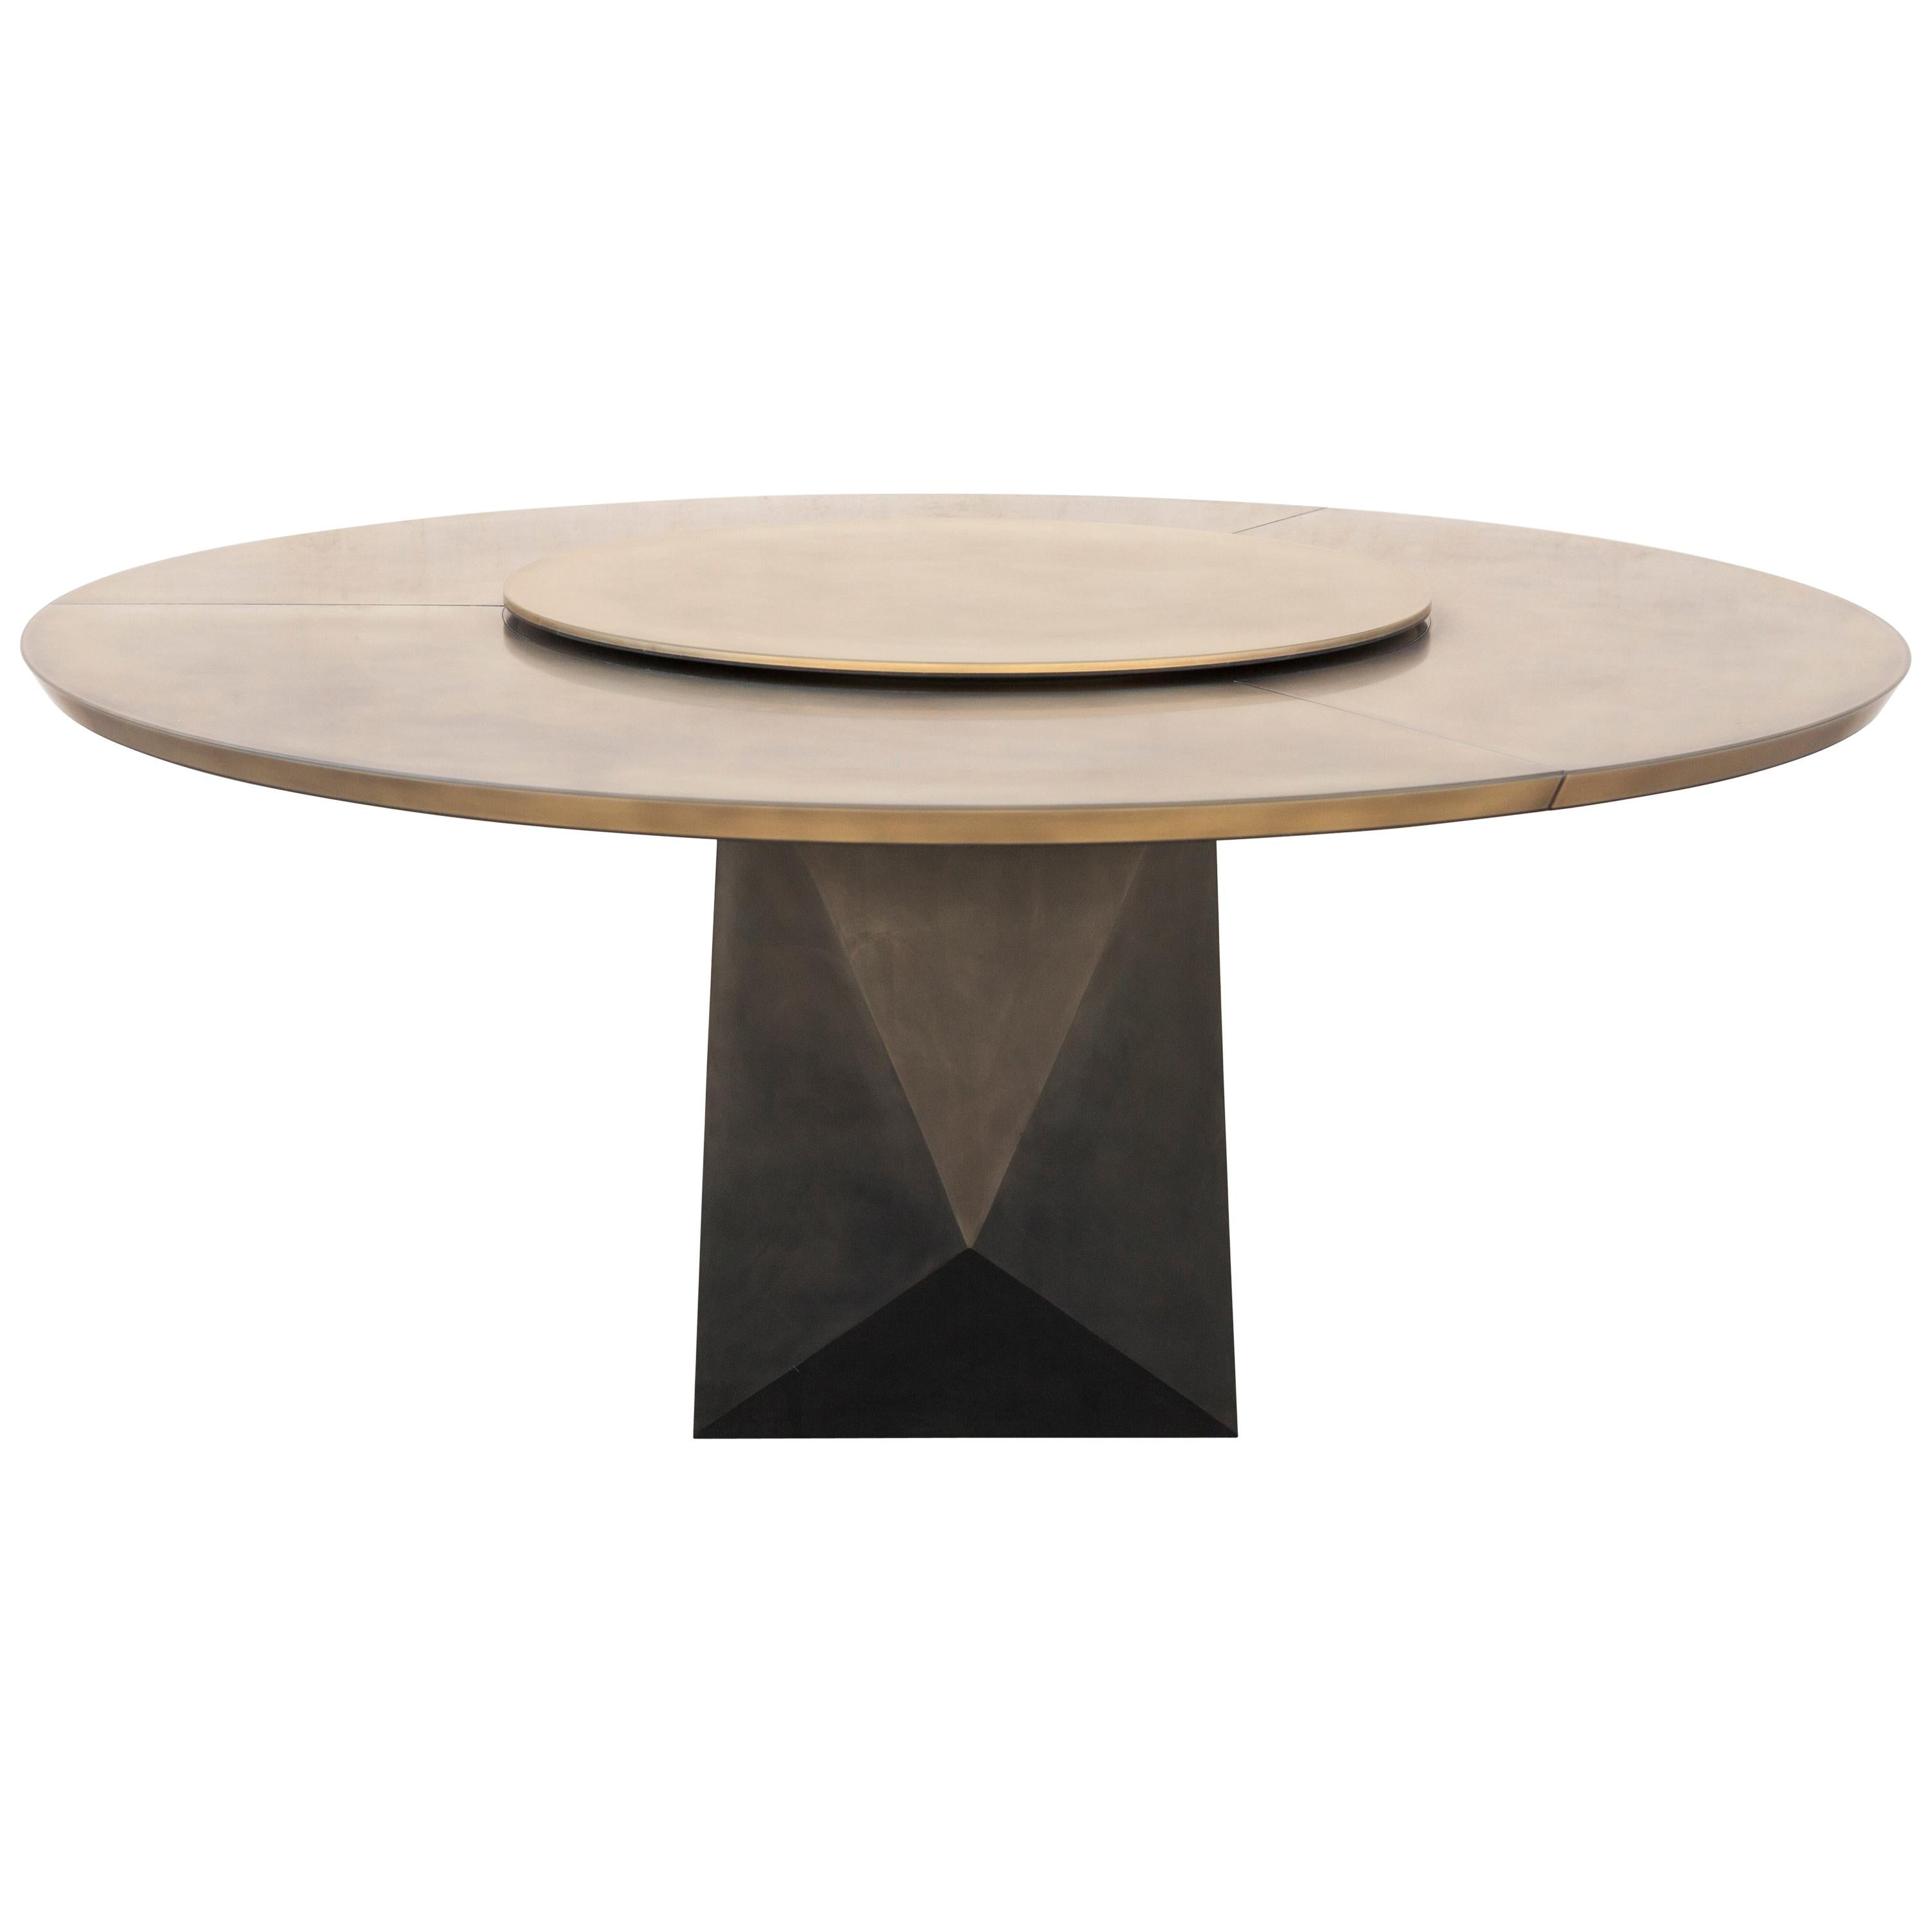 Prism Dining Table, Customizable Metal and Resin